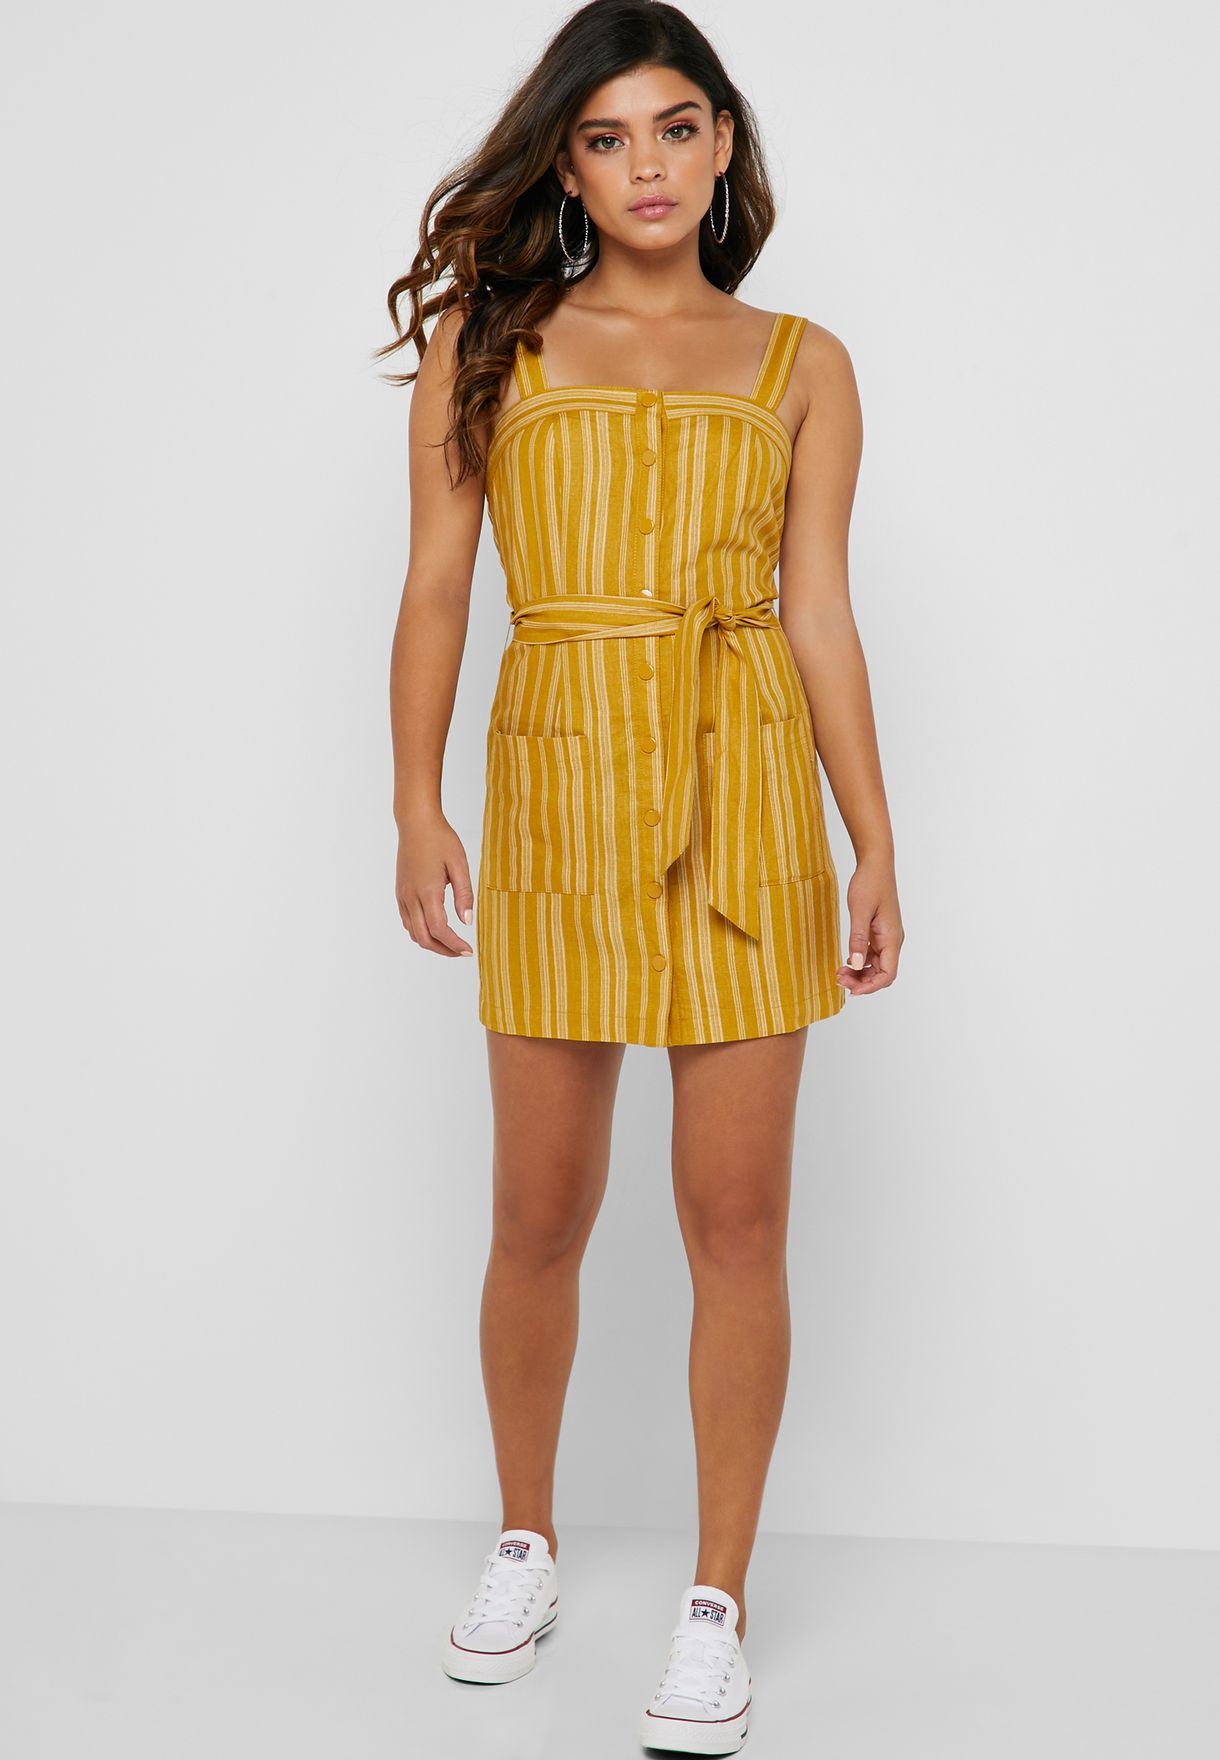 0a68a36e46f Shop Forever 21 yellow Tie Waist Button Down Dress 344317 for Women in  Bahrain - 20008AT72WFP